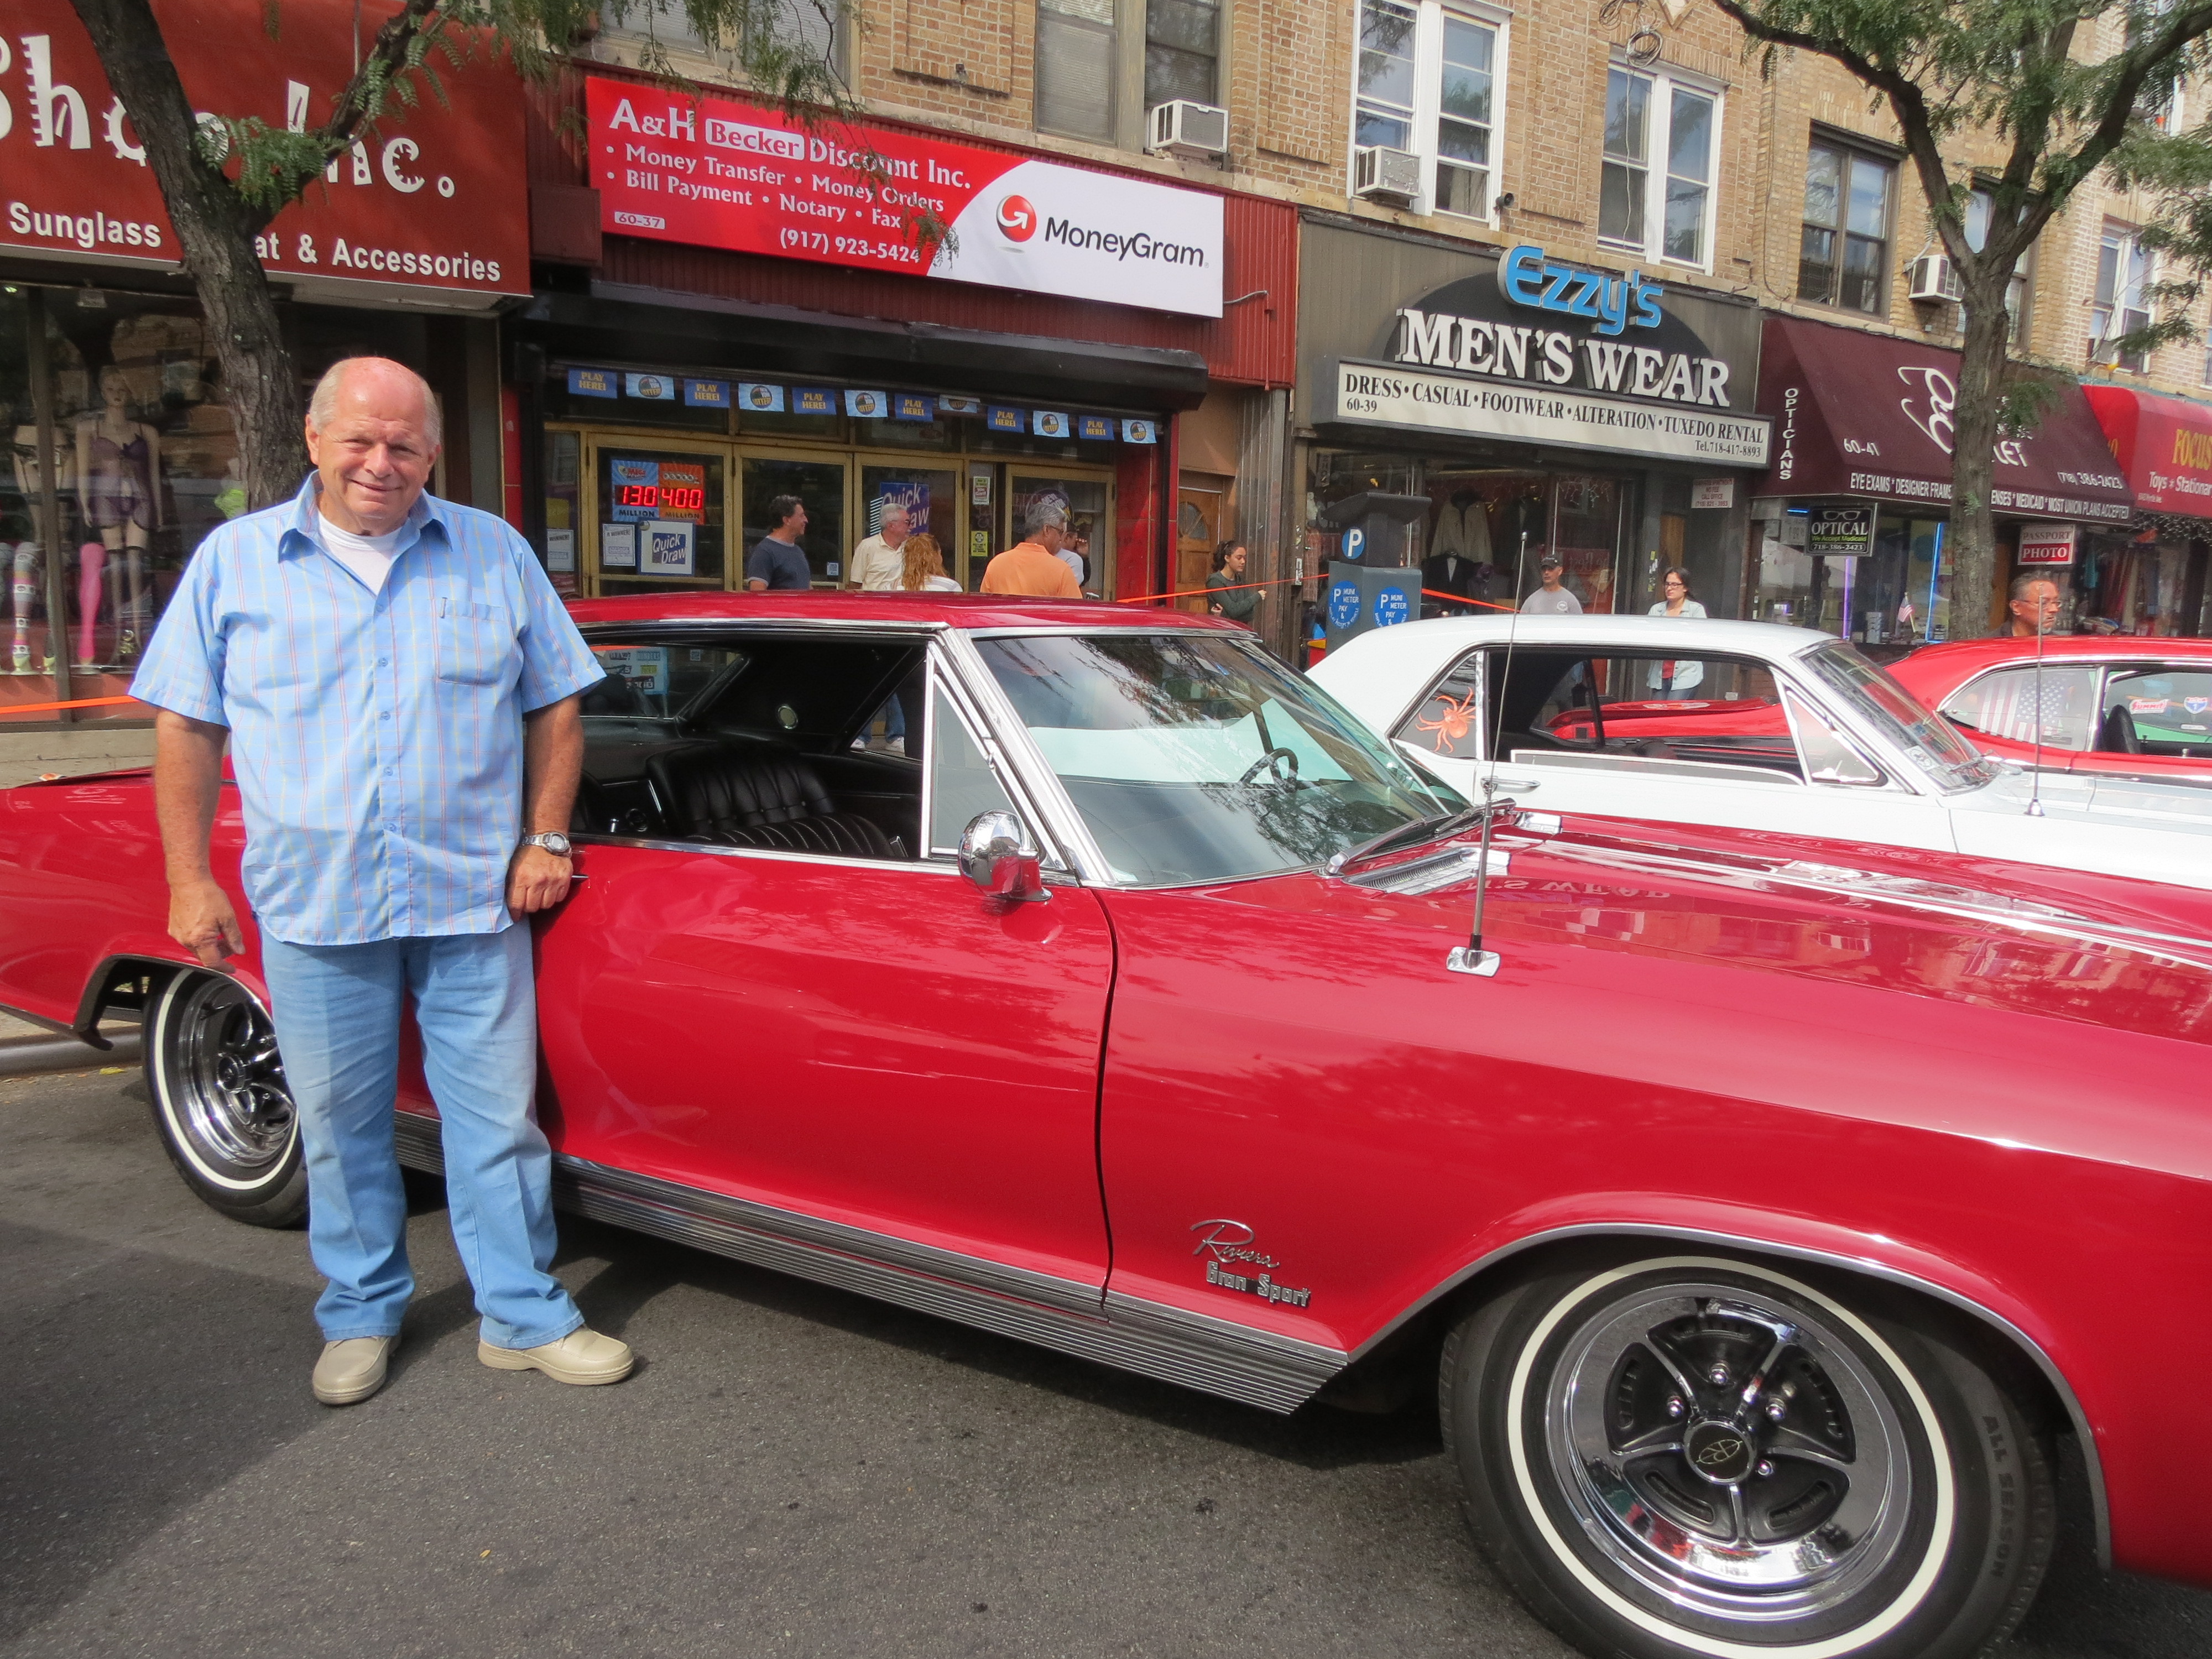 "Kenny Vasti, of Patchogue, L.I., shows off his 1965 Buick Riviera at the festival, where numerous classic car owners exhibited models from decades ago. ""I used to work for Buick in '65, and I loved this car then, but I couldn't afford it. I waited 45 years to get this,"" smiled Vasti, who bought the car four years ago."